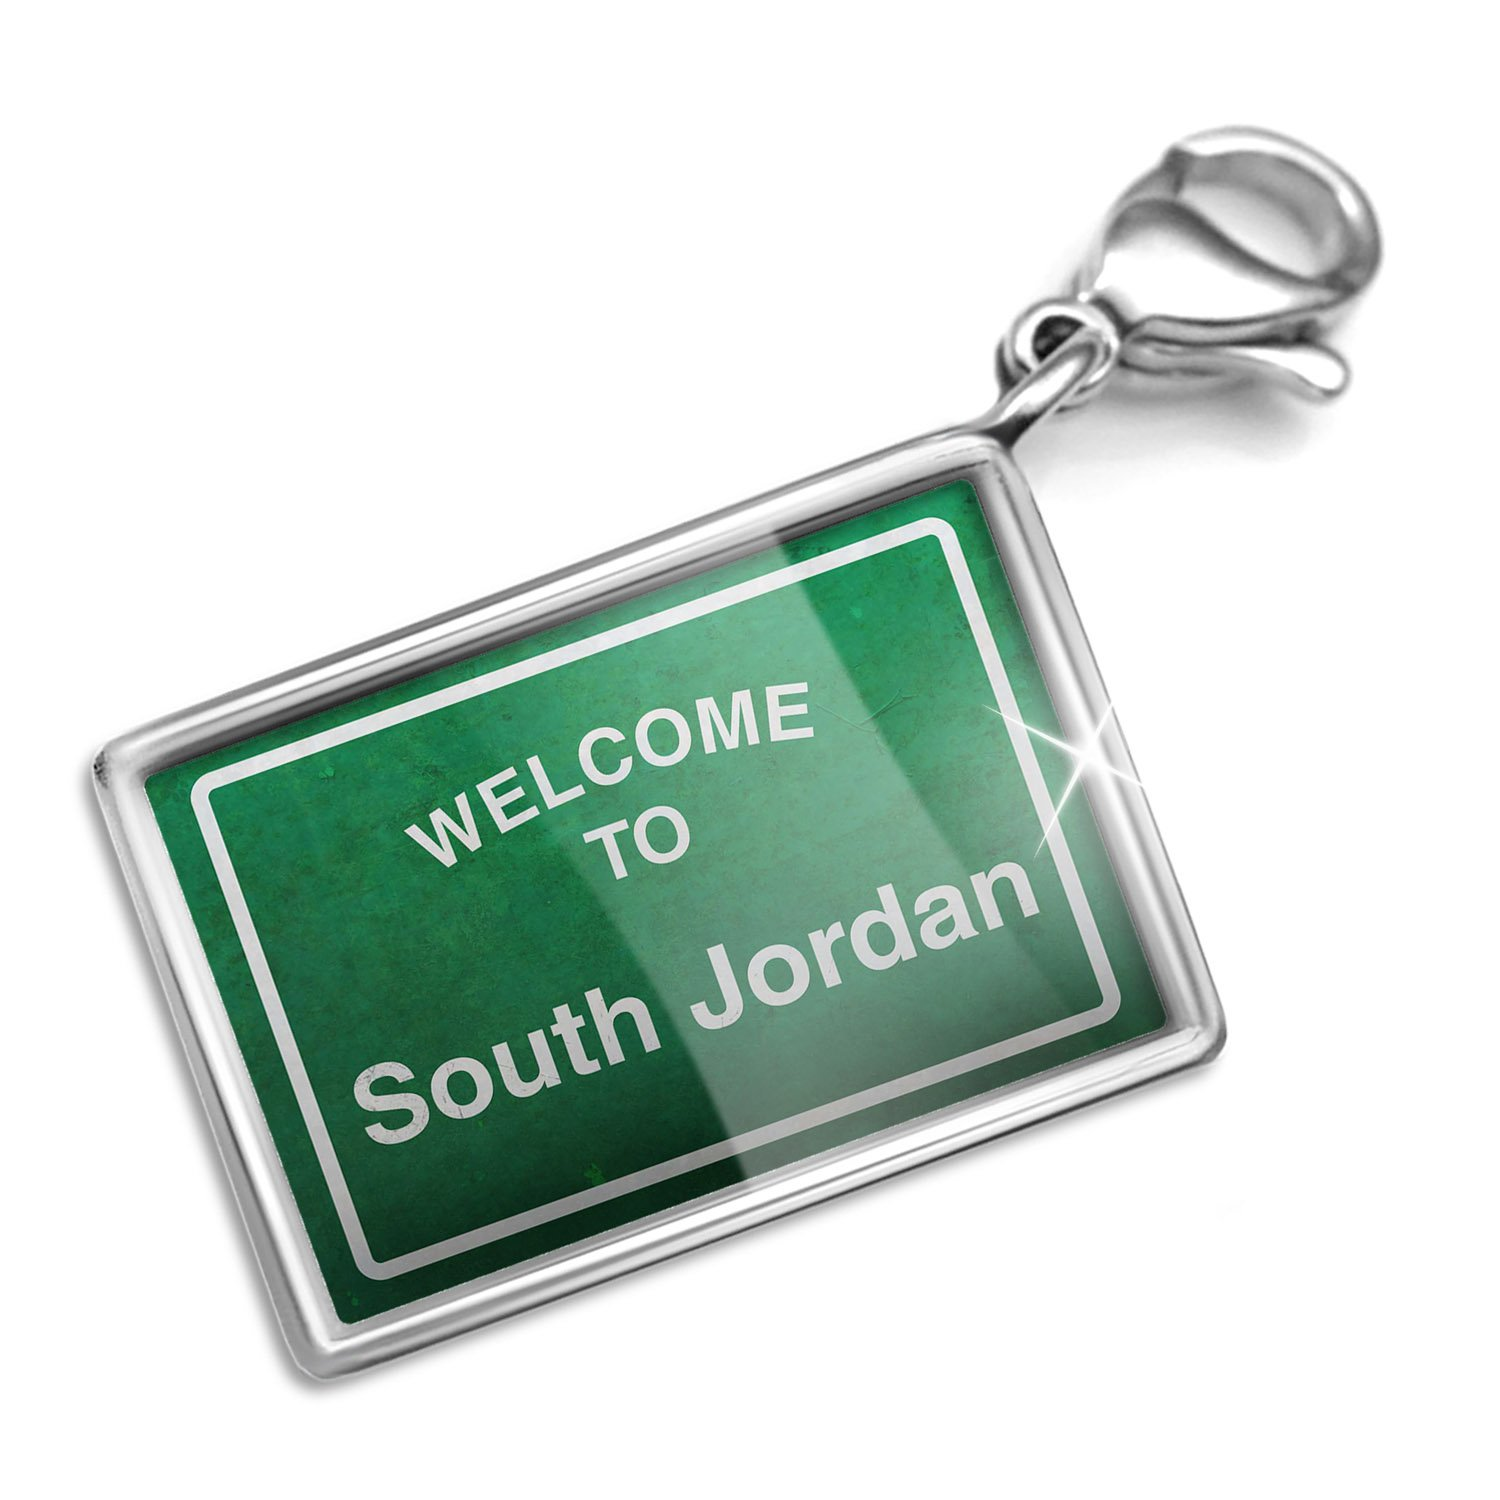 Clip on Charm & Bracelet Set Green Road Sign Welcome To South Jordan Lobster Clasp